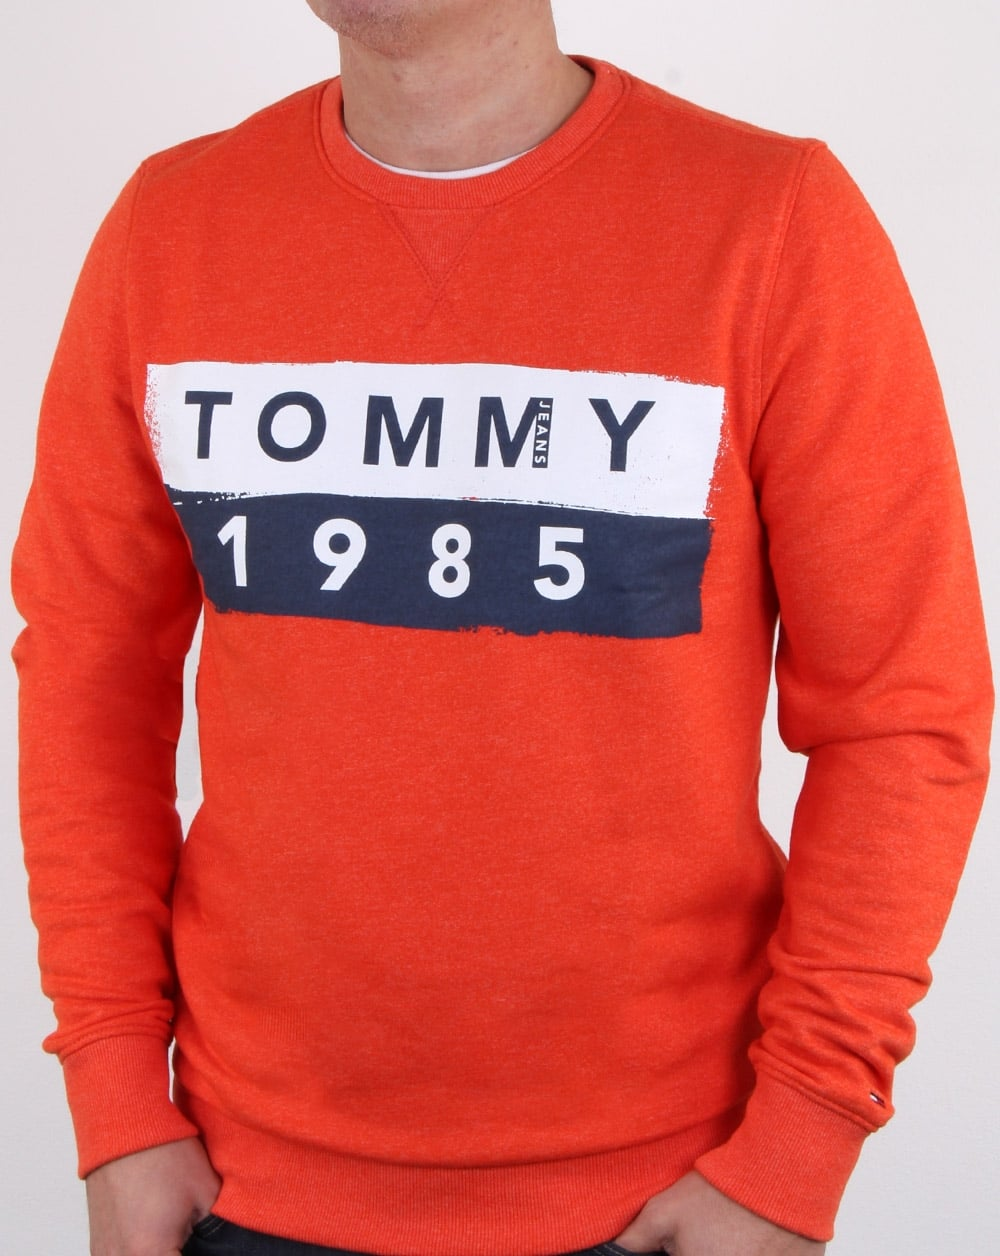 7c8d79f7 Tommy Hilfiger 1985 Logo Sweatshirt Orange, Mens, crew neck, cuffs